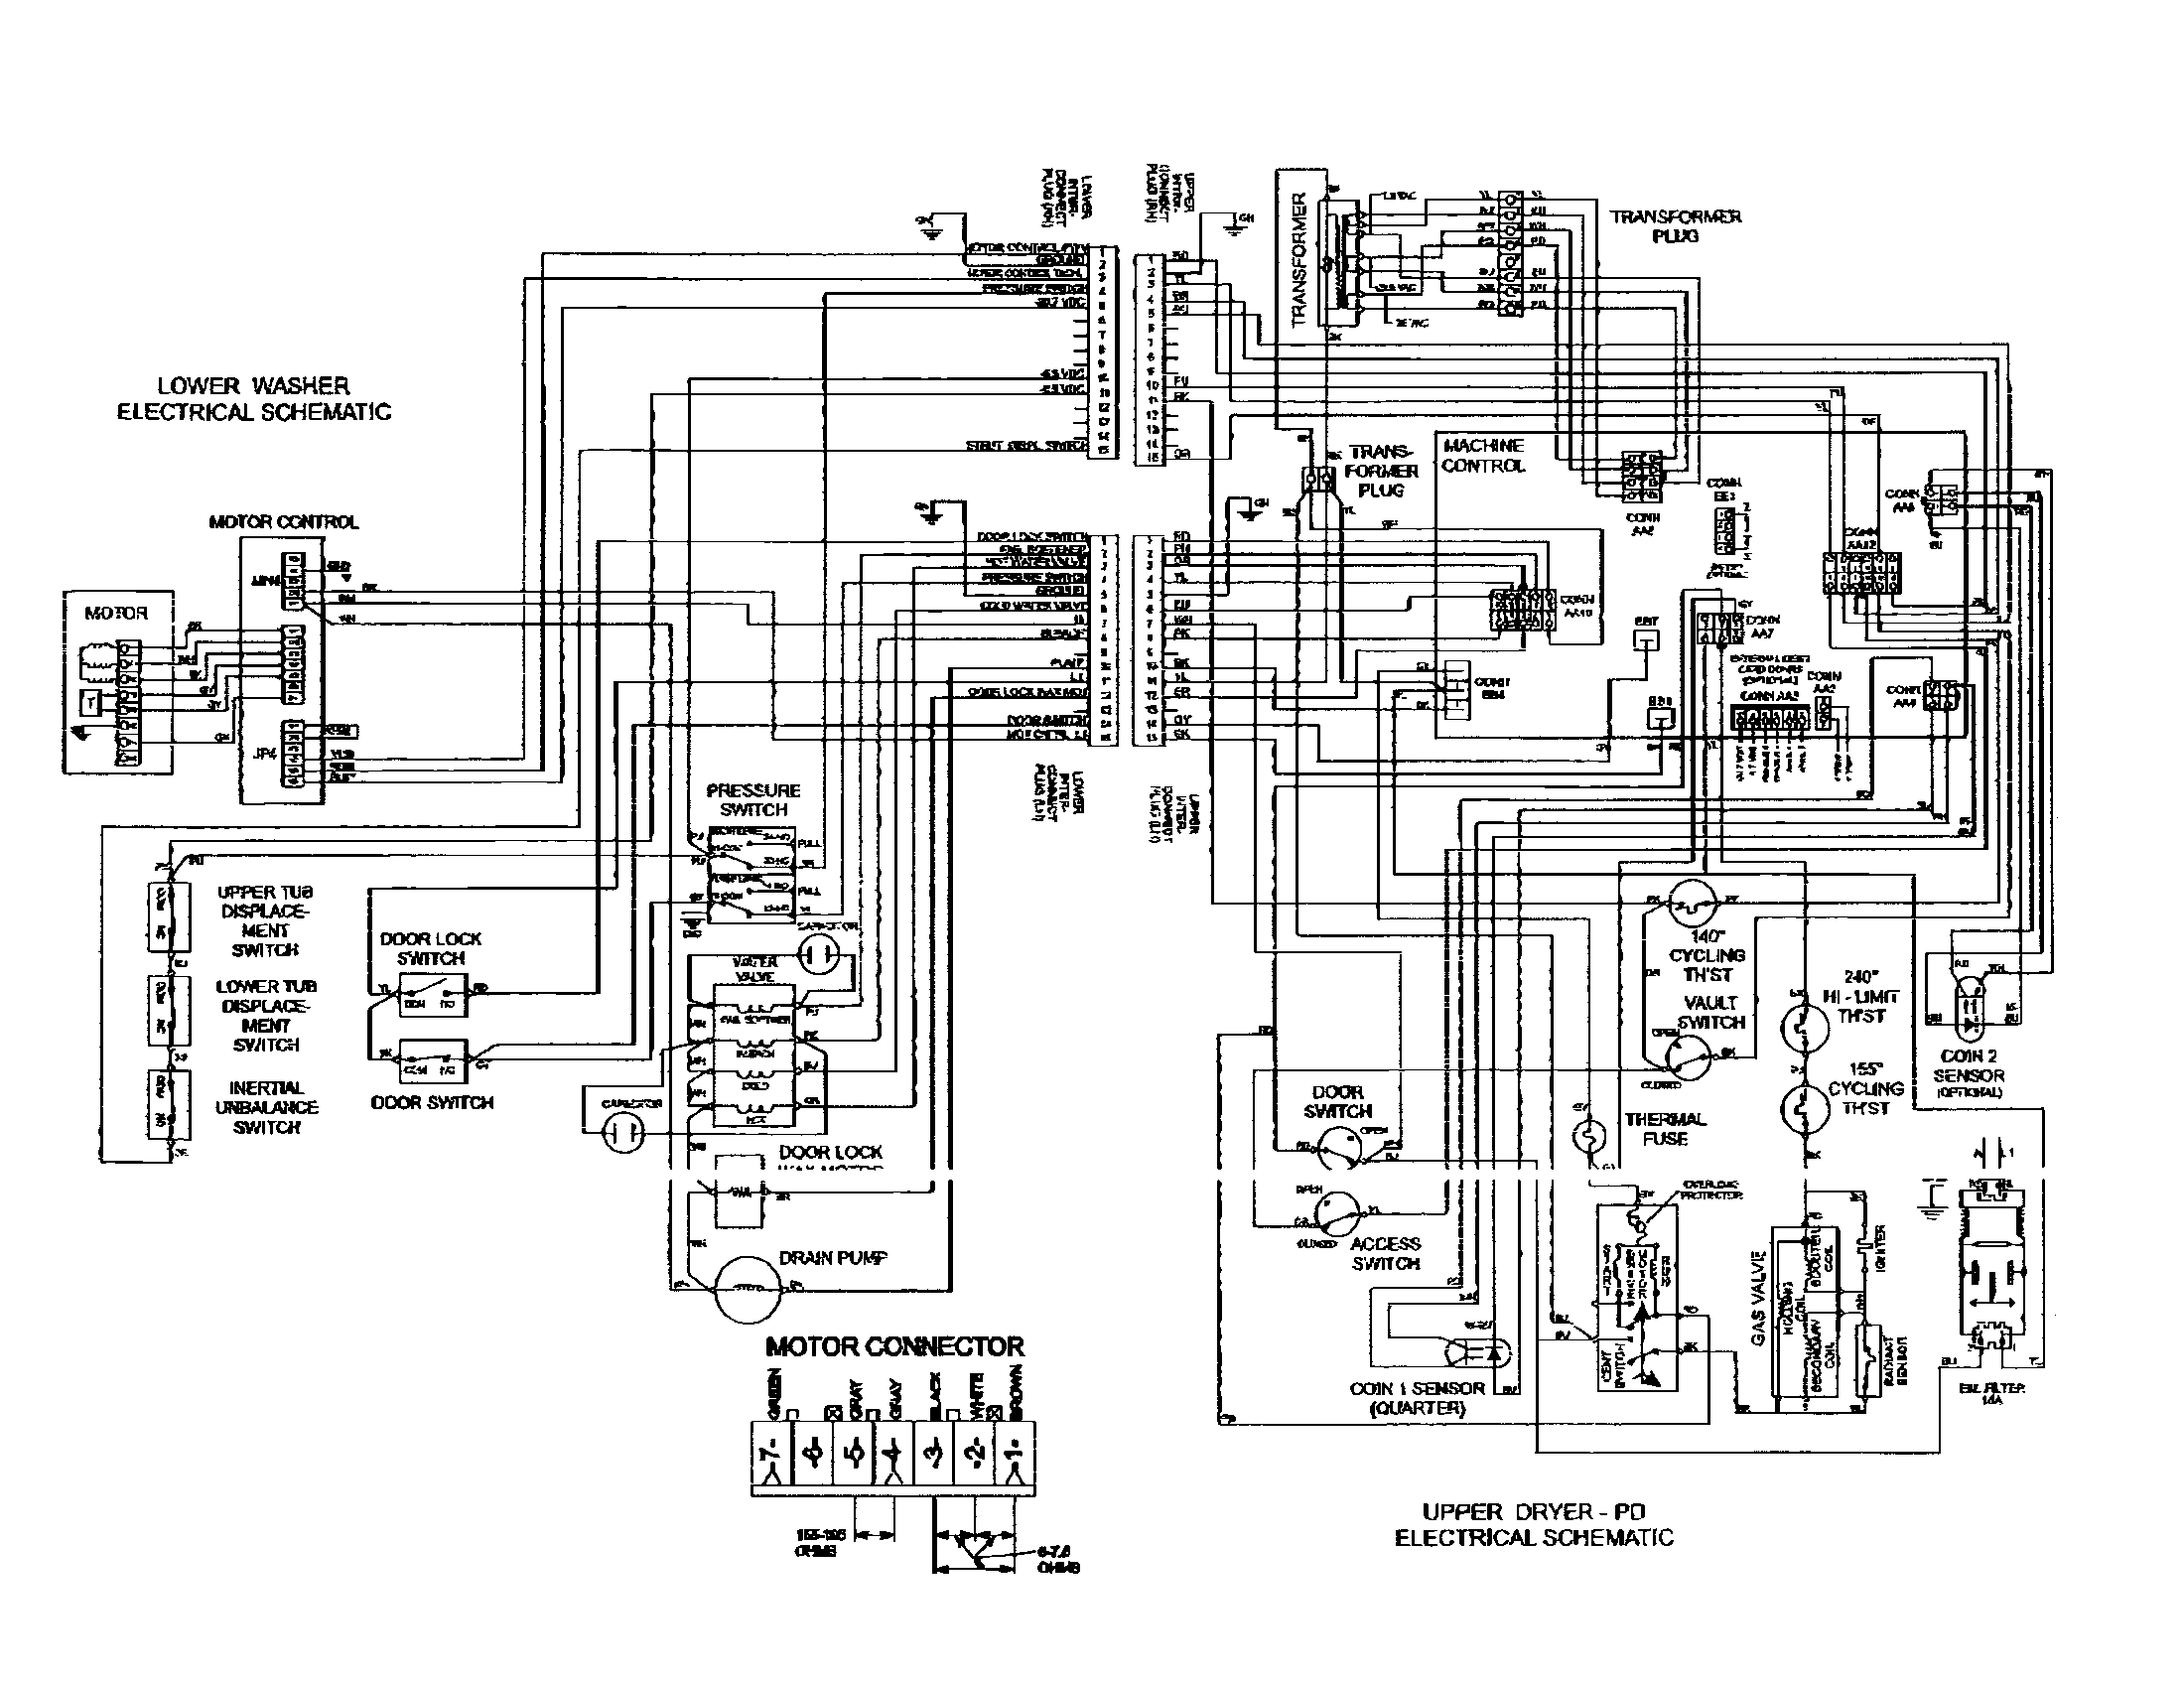 Maytag Washer Wiring Diagram Sample